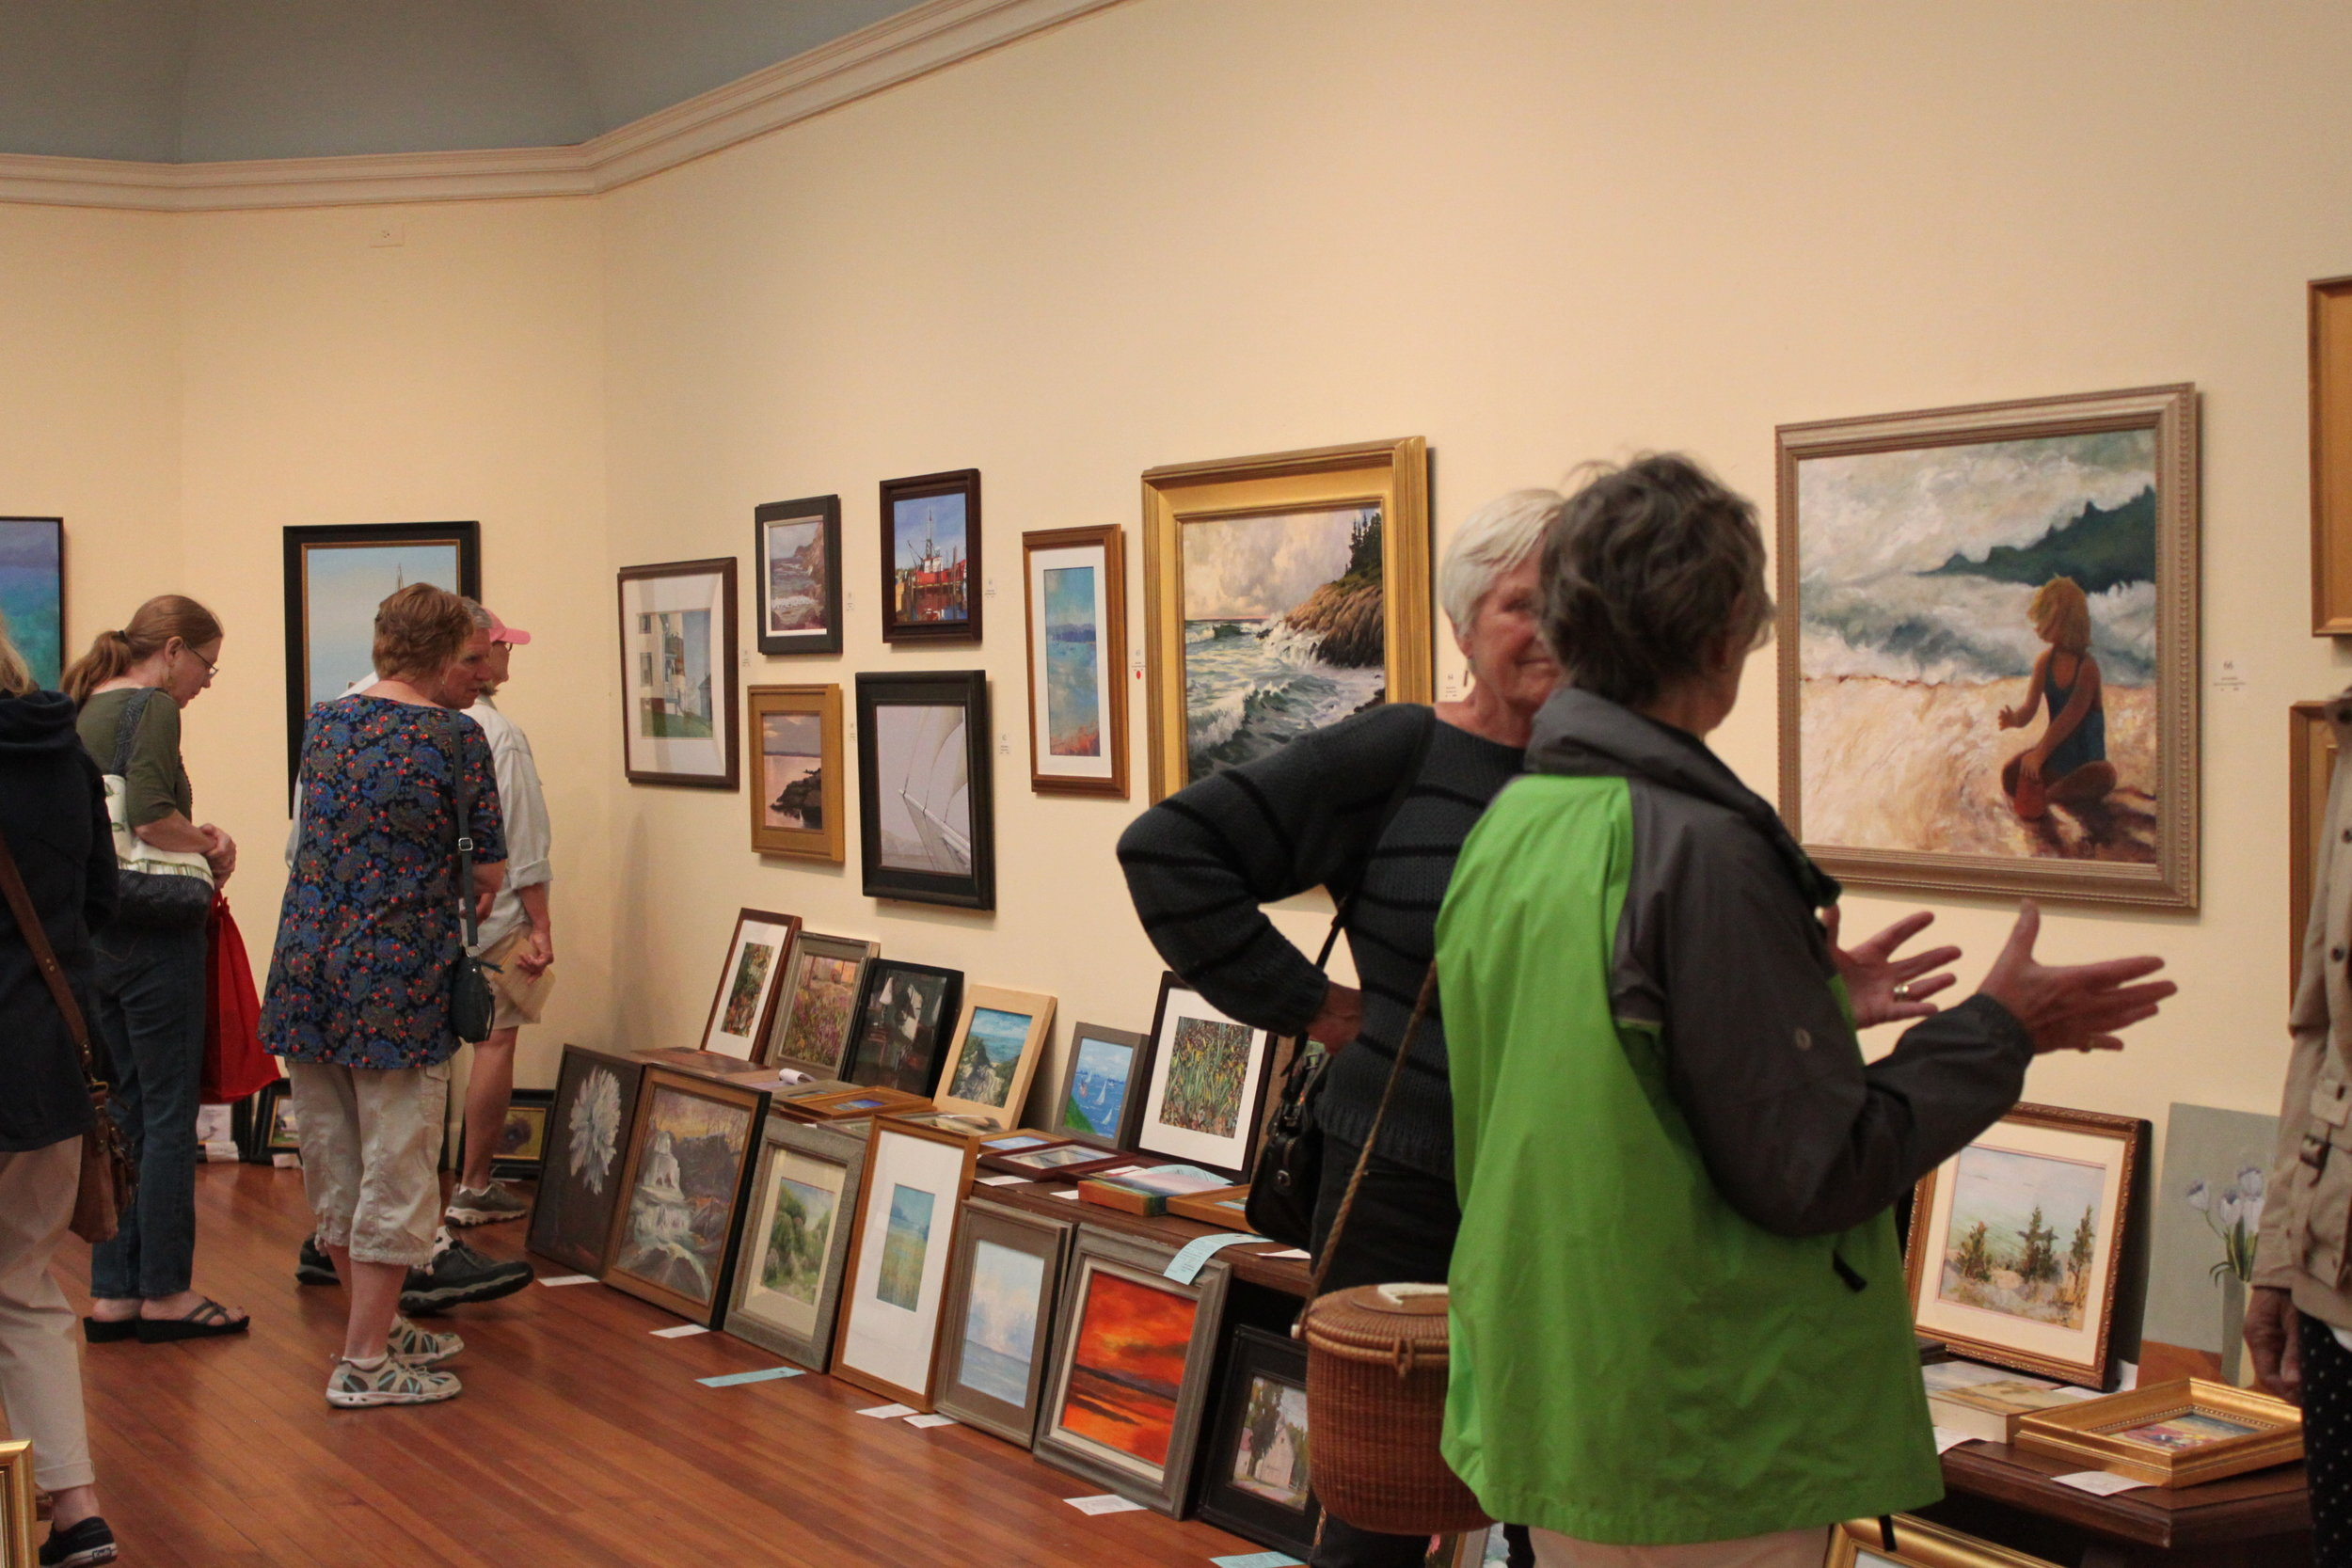 Art Sale & Specialty Vendors - On the front lawn of the Lyme Art Association, you'll find art for sale by its Association Members as well as specialty vendors. Indoors, you'll enjoy the annual Marine Art show. Open 10am-4pm.